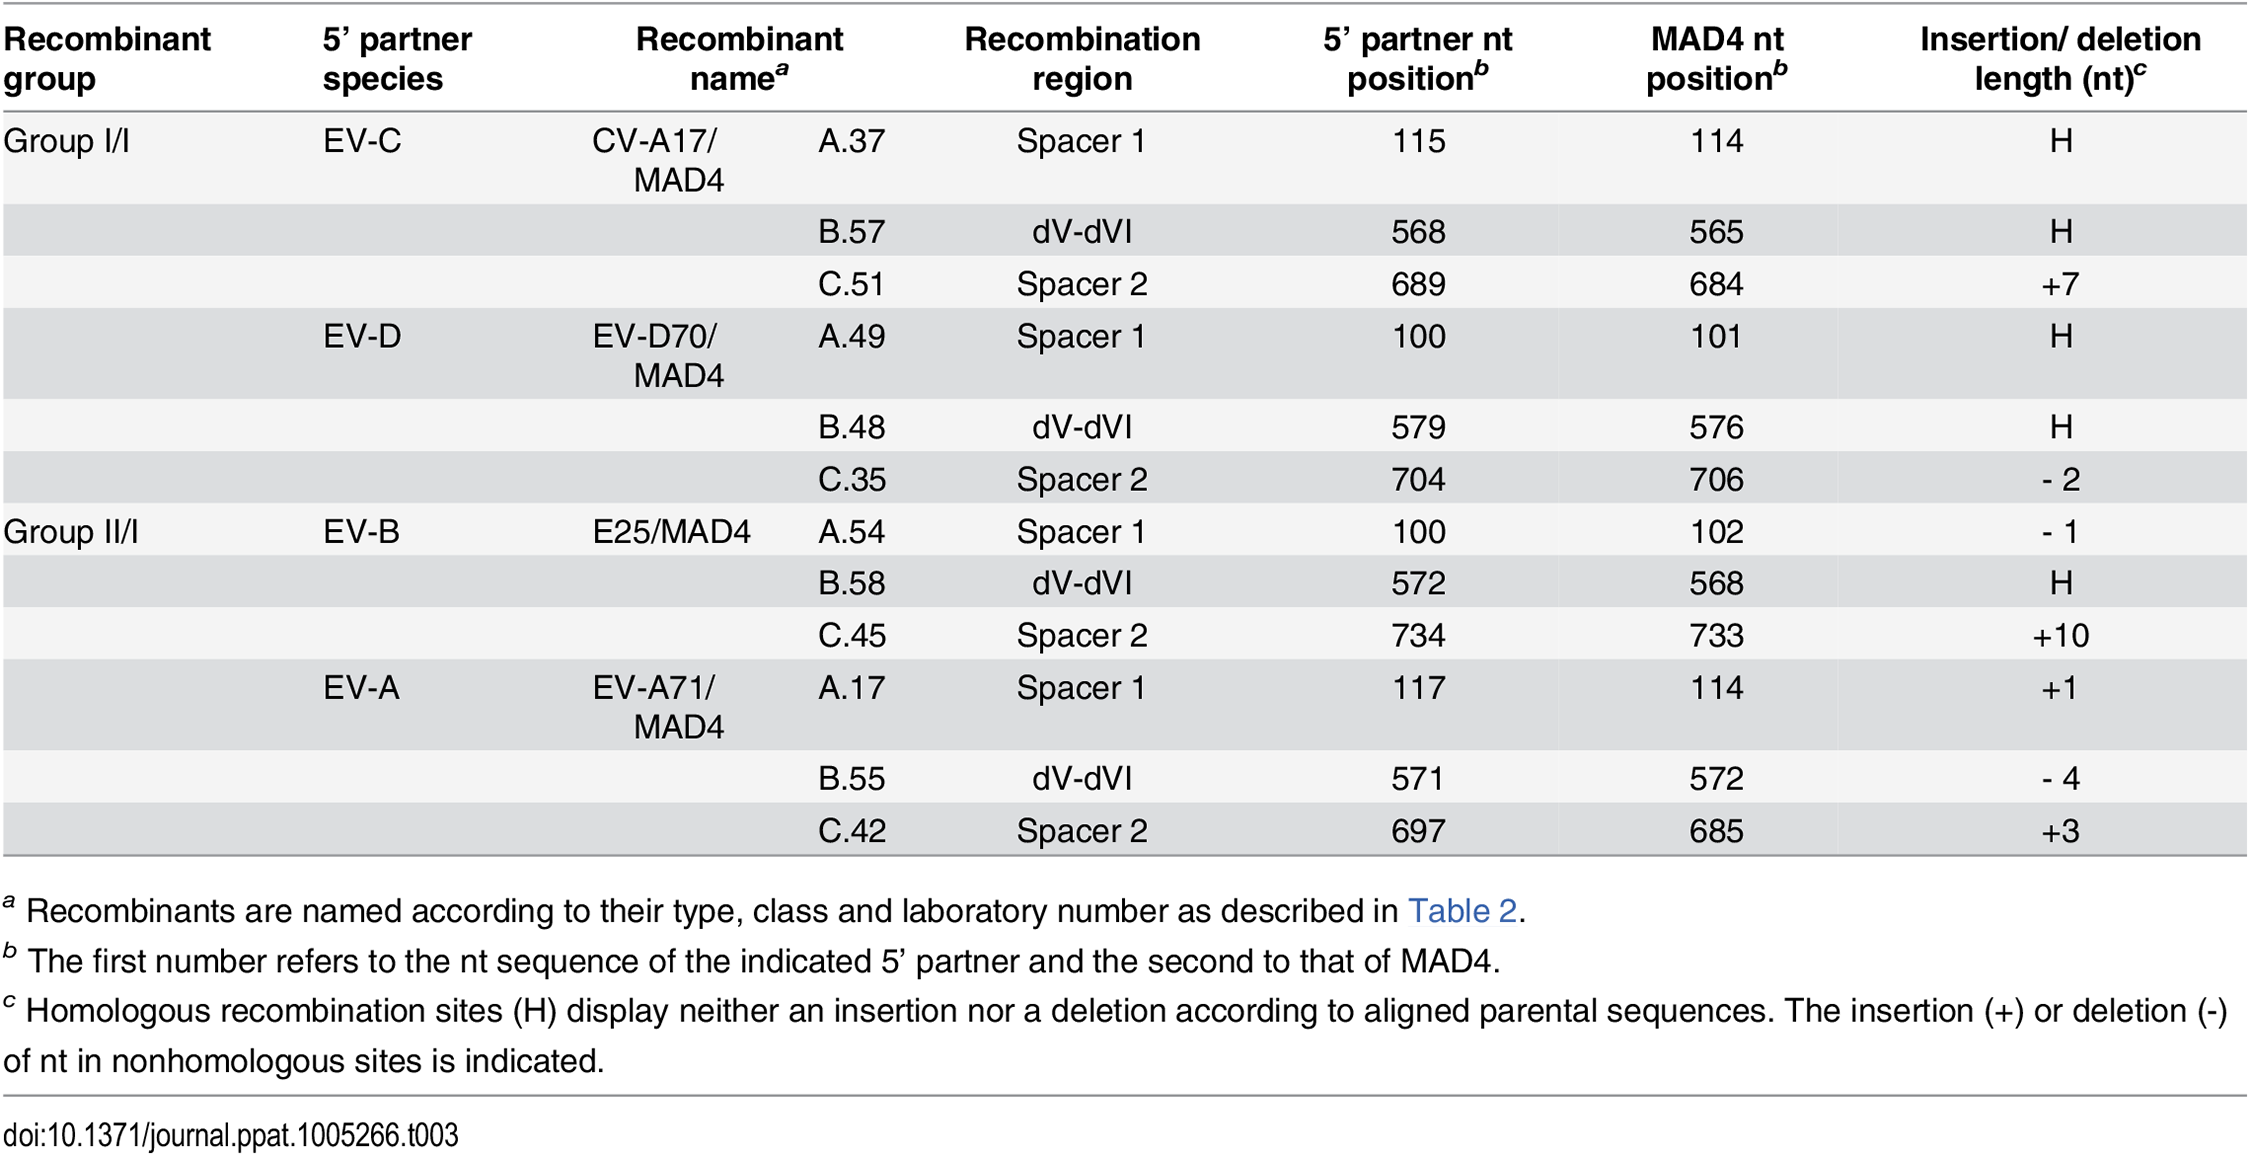 Location of recombination site in selected recombinants.